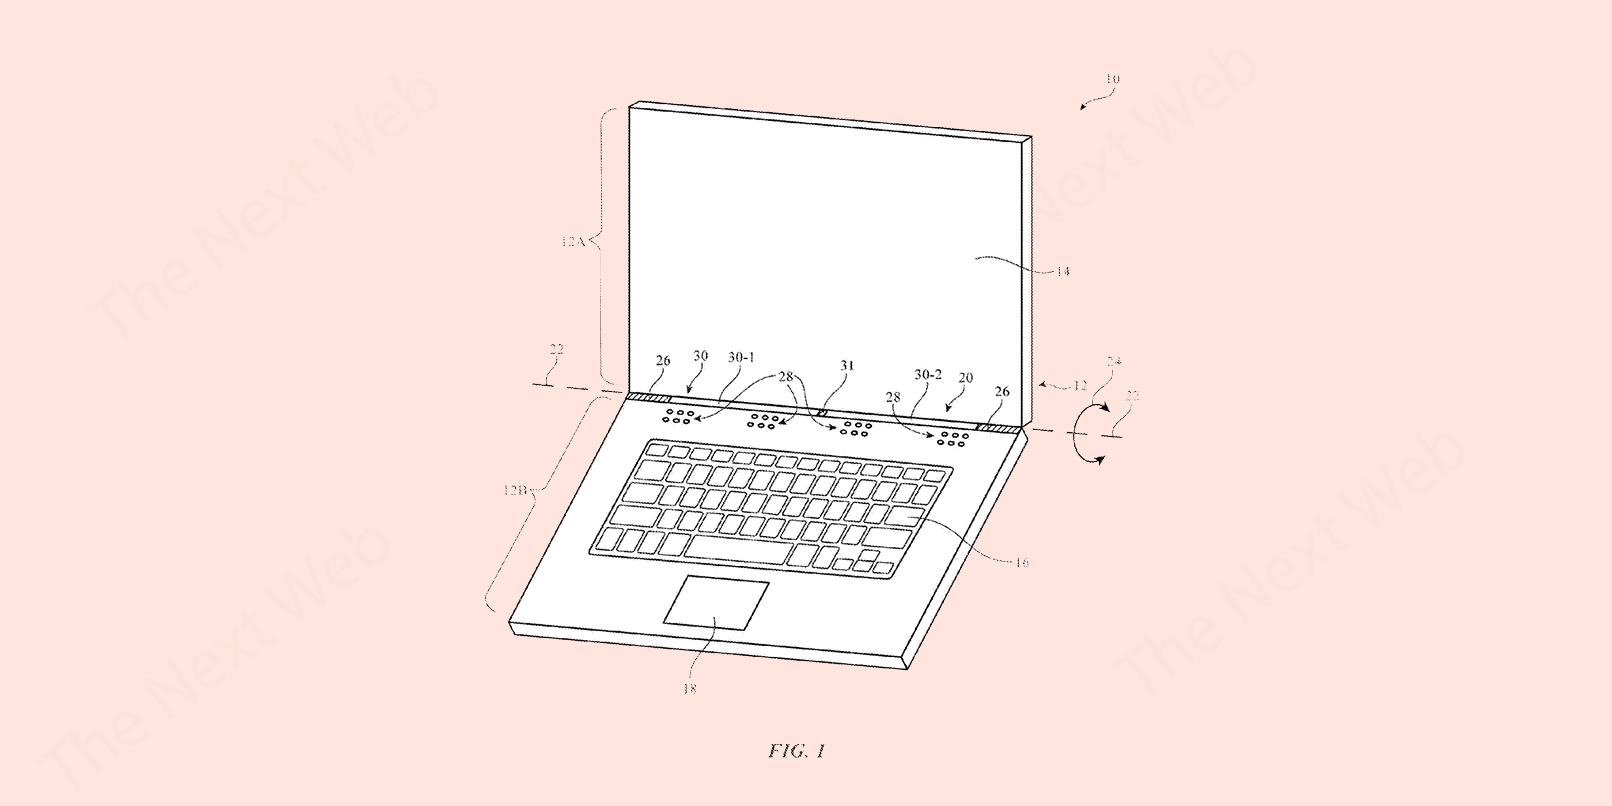 New Apple patent details plans for a cellular MacBook